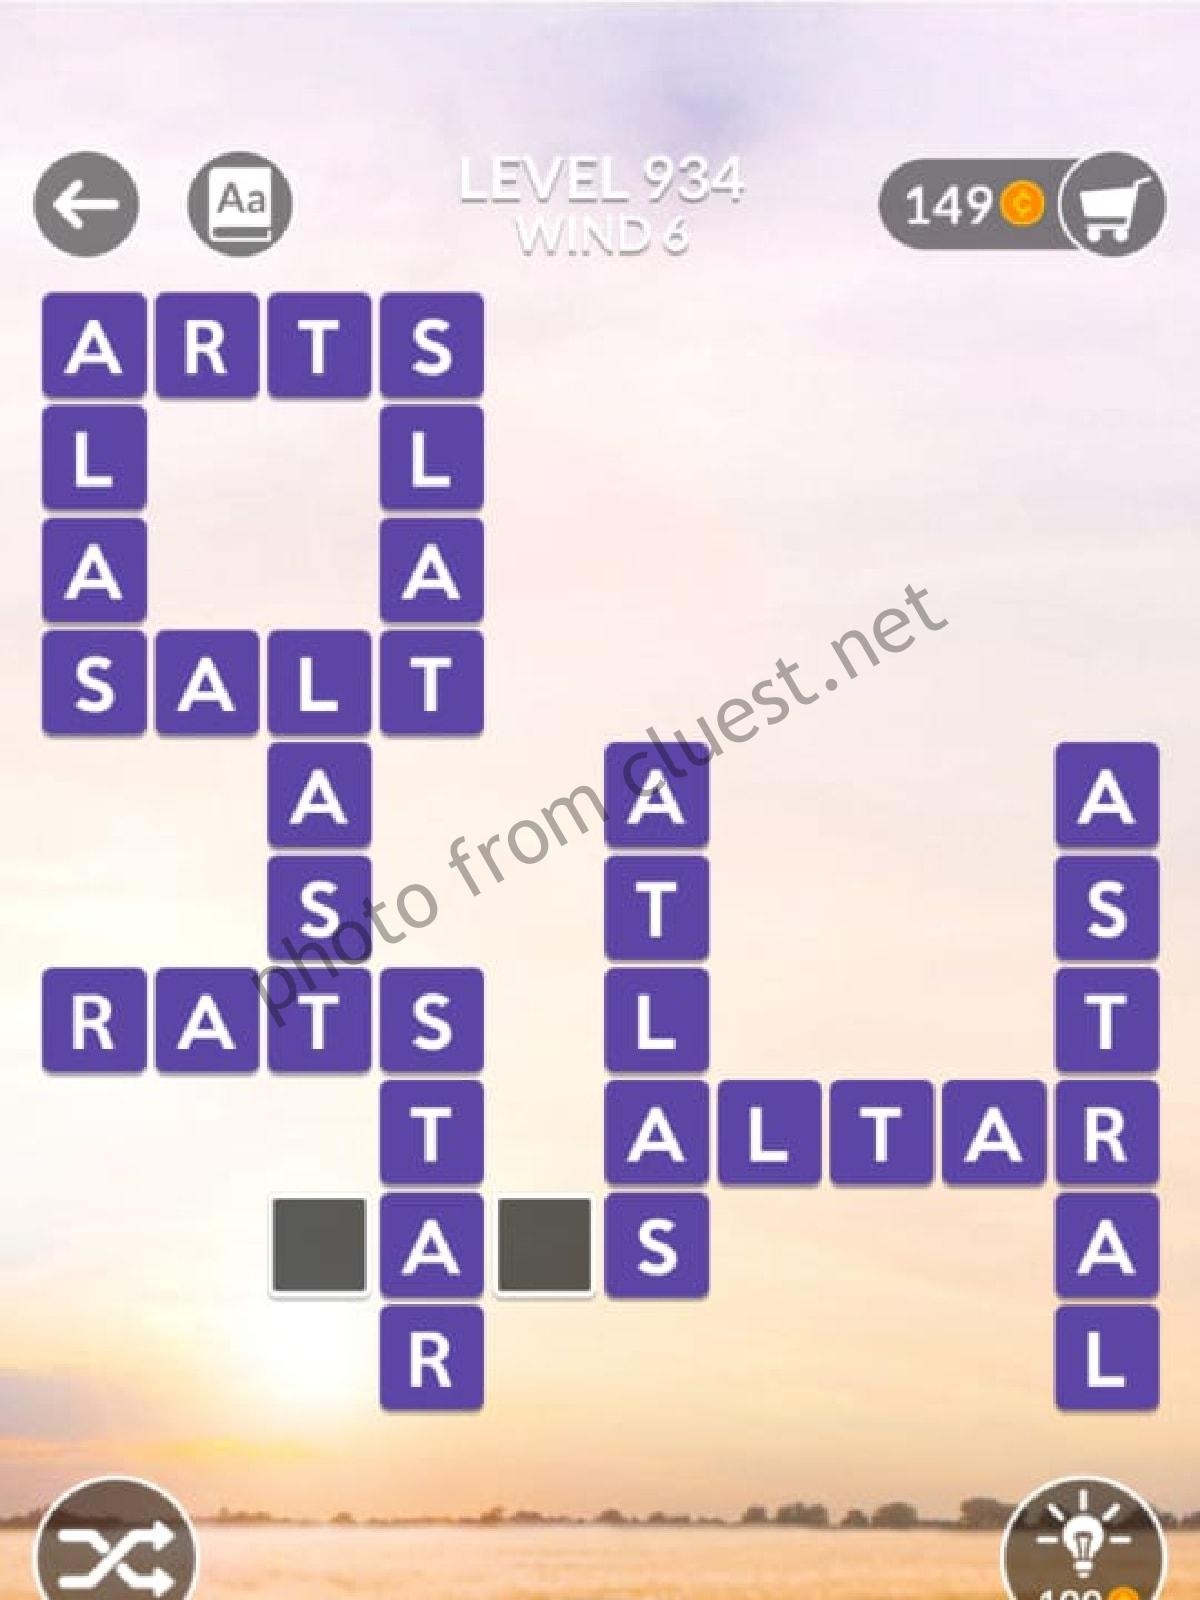 Wordscapes Level 934 Wind 6 Answers Cluest